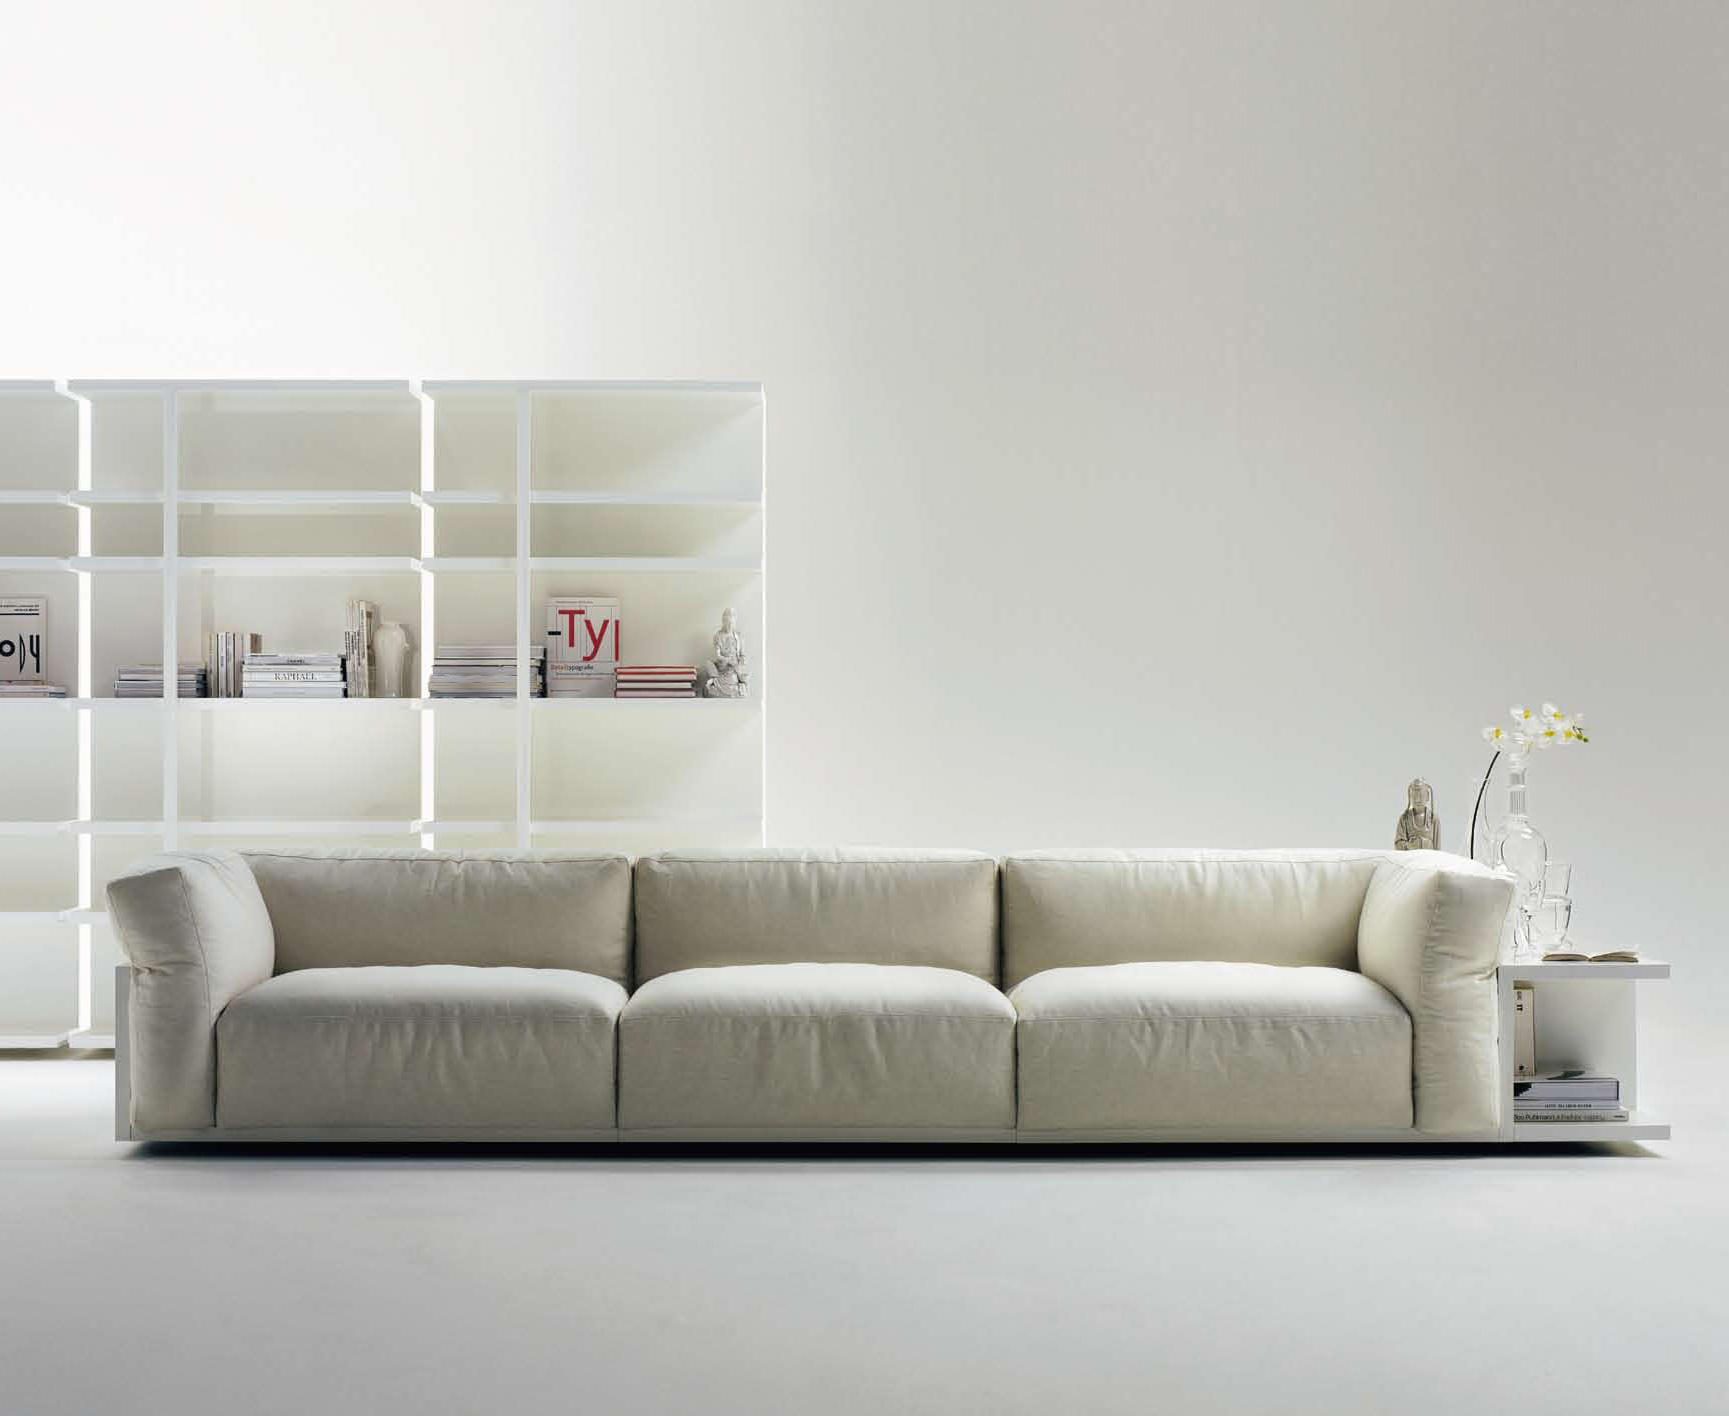 271 mex cube sofas from cassina architonic. Black Bedroom Furniture Sets. Home Design Ideas